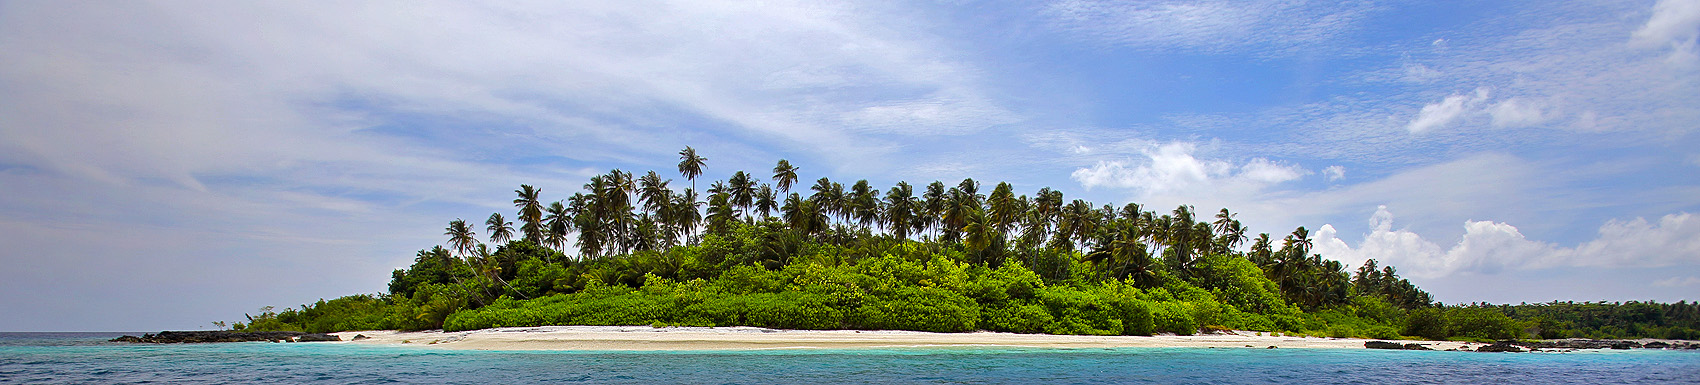 Entrance to Wunga Island lagoon. North Nias (Nias Utara), Nias Island, Indonesia.